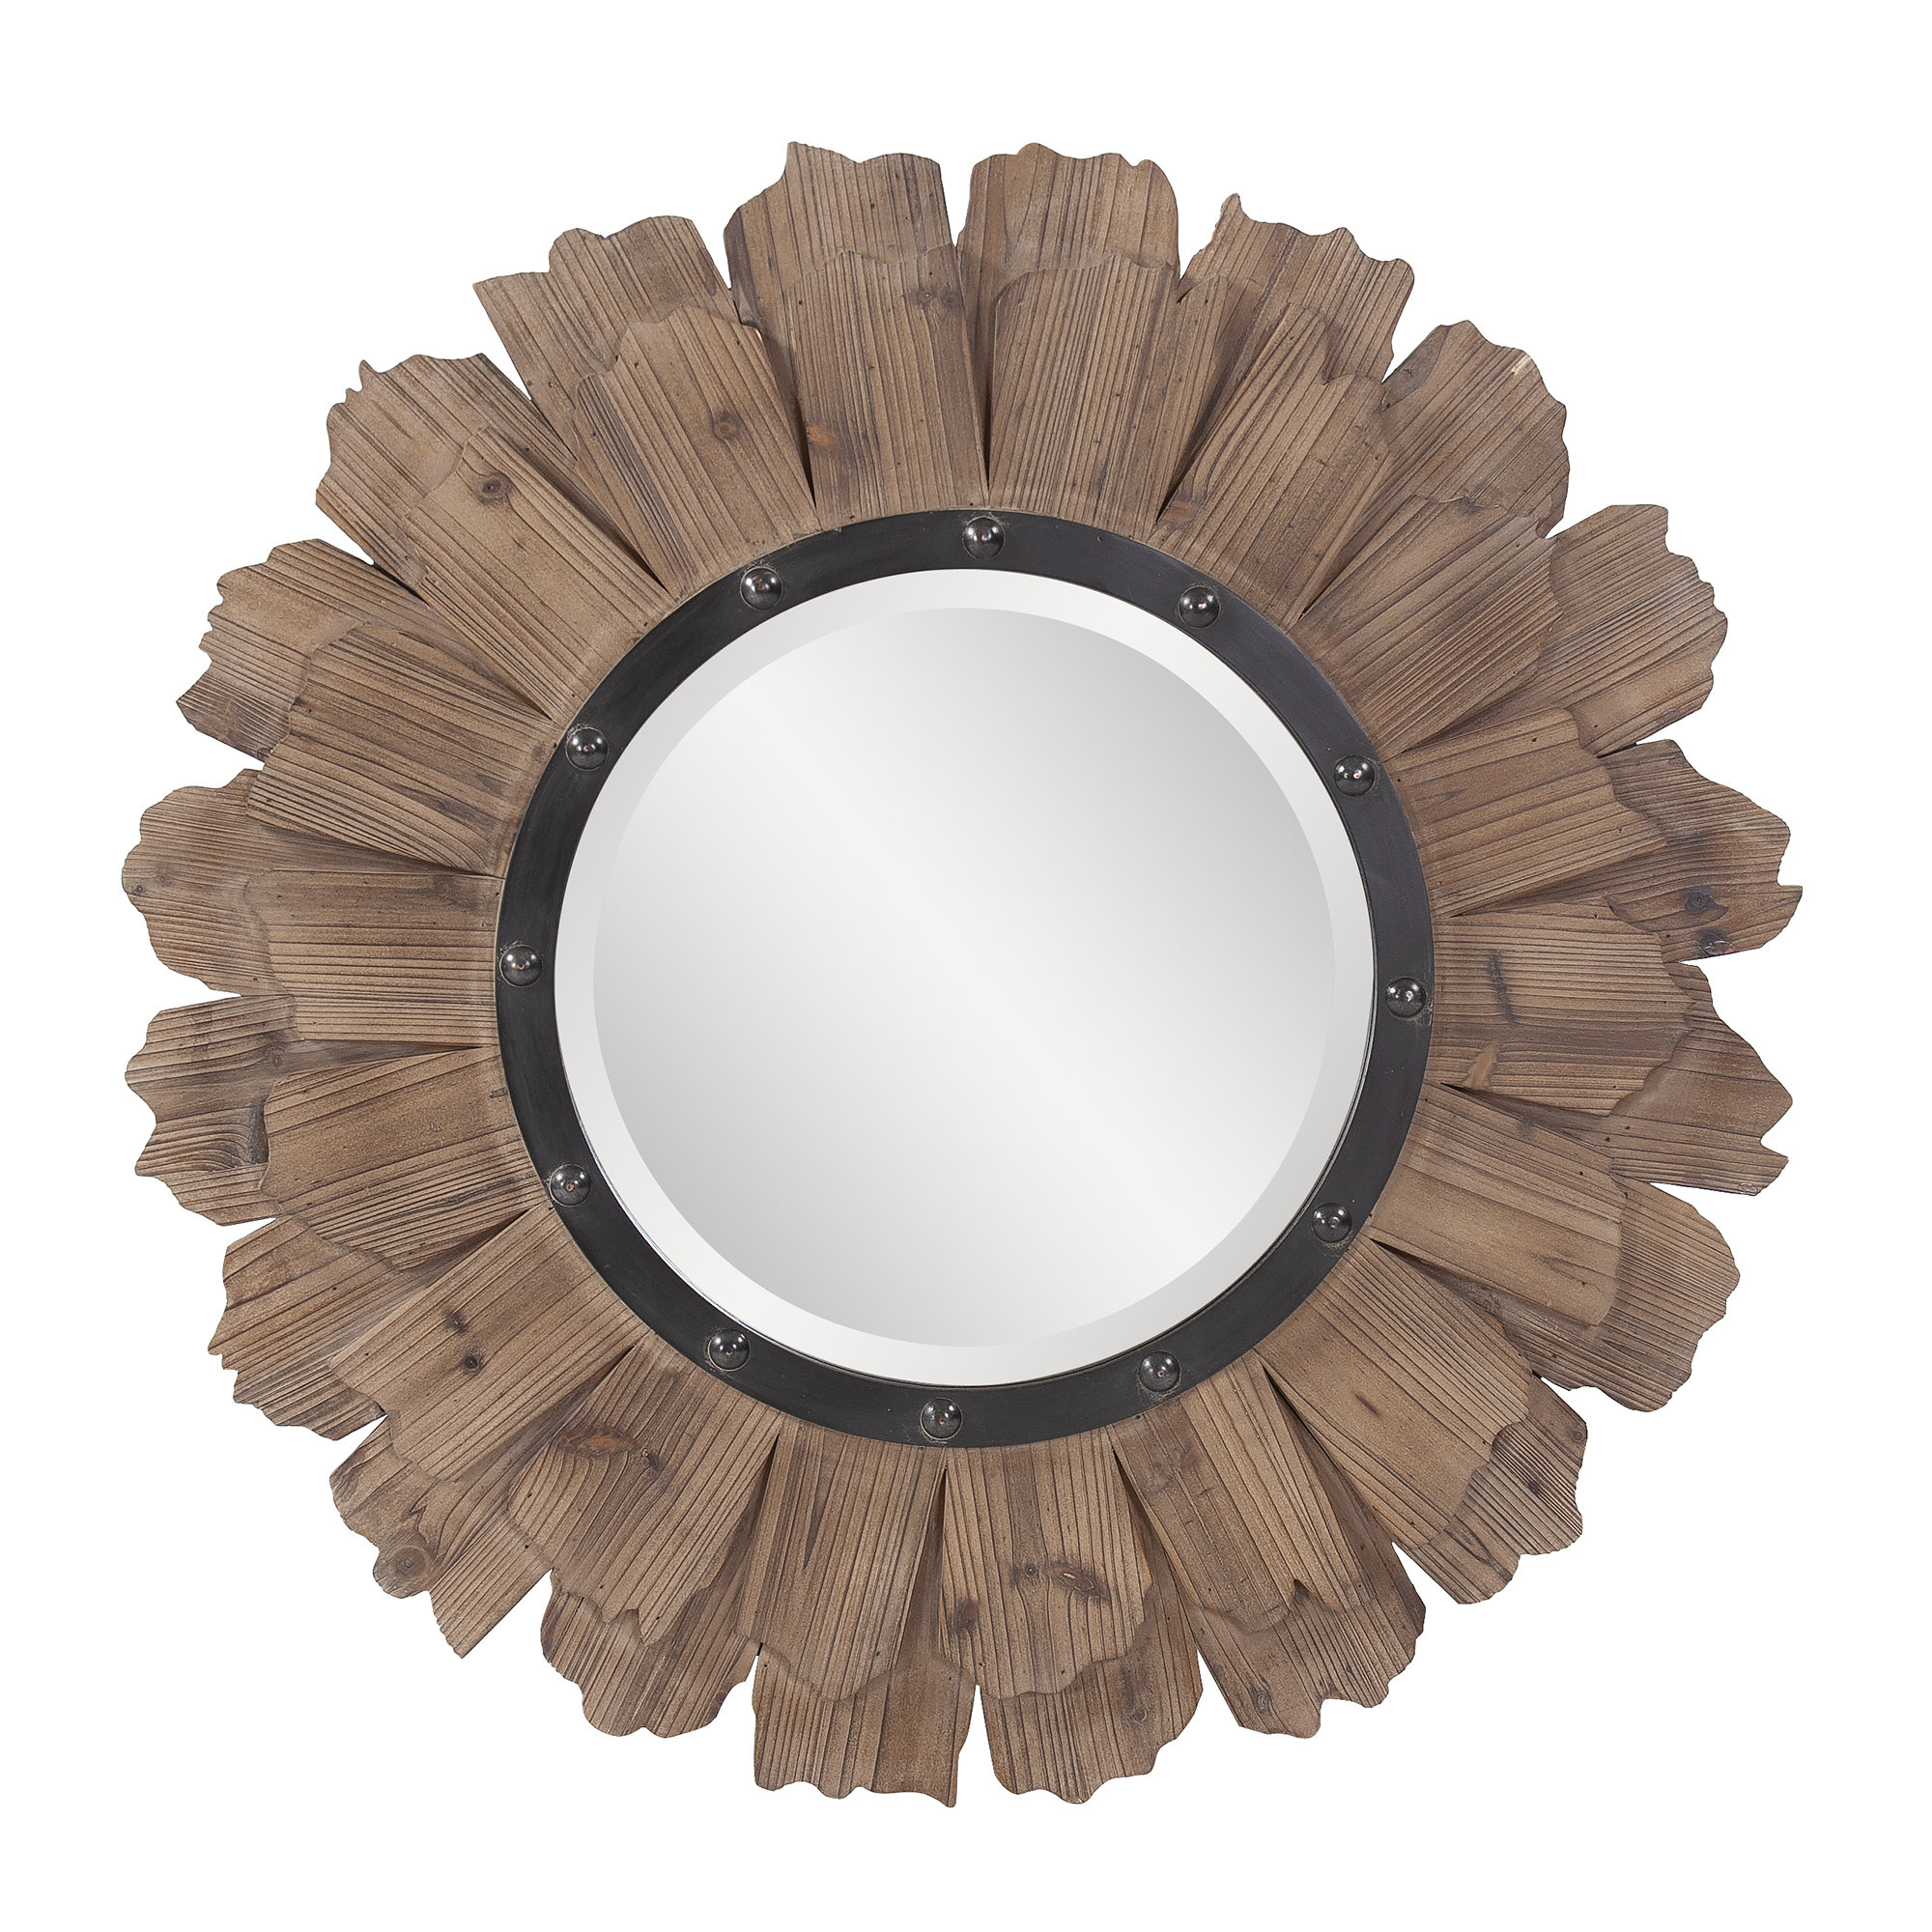 Sunburst Accent Mirror Intended For Perillo Burst Wood Accent Mirrors (Image 18 of 20)